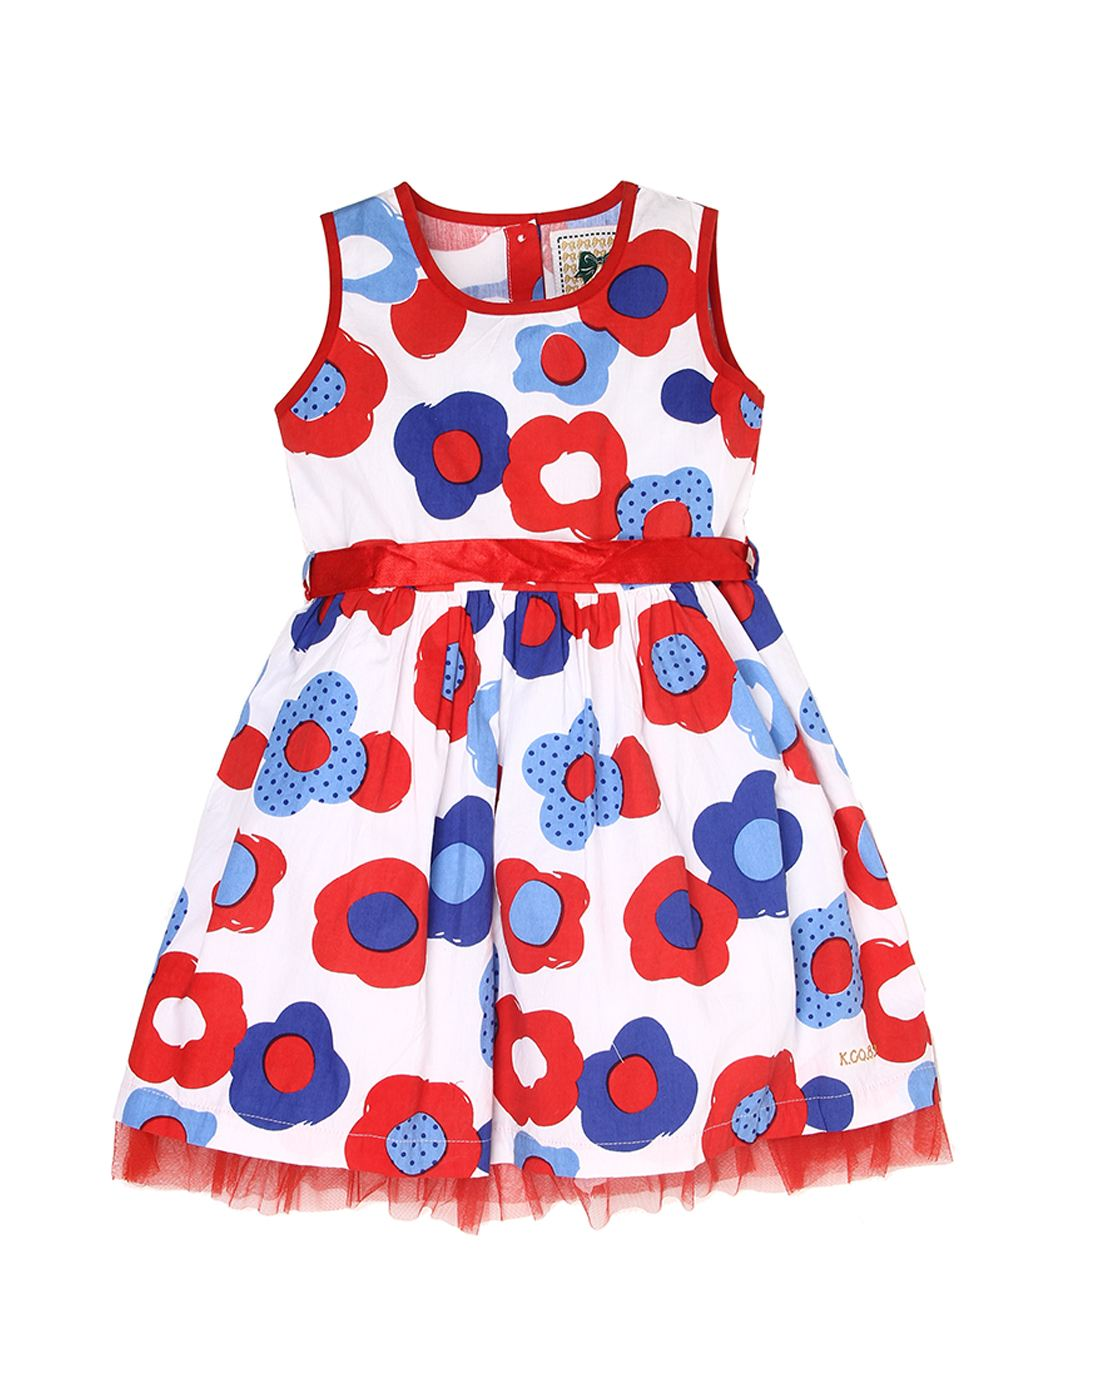 K.C.O 89 Girls Casual Printed Sleeveless Frock